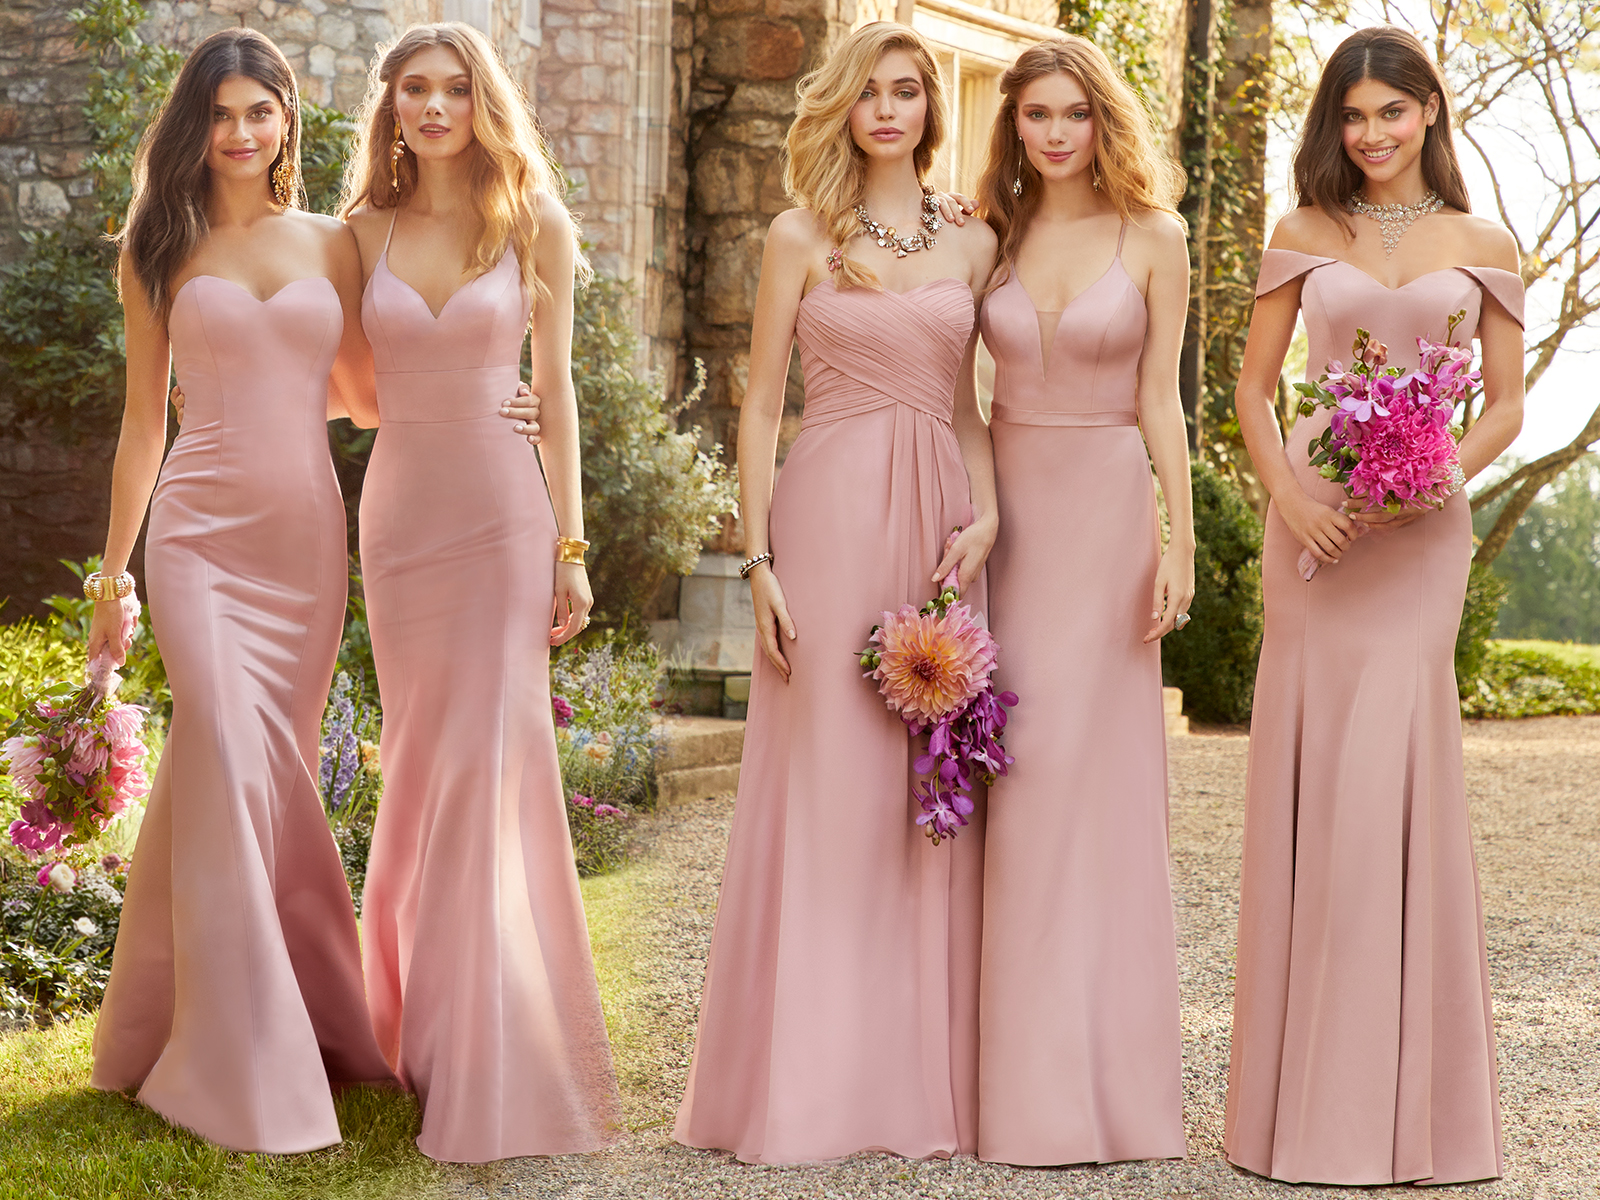 quality great variety models exceptional range of colors NEW Bridesmaid Dresses by Camille La Vie | Camille La Vie